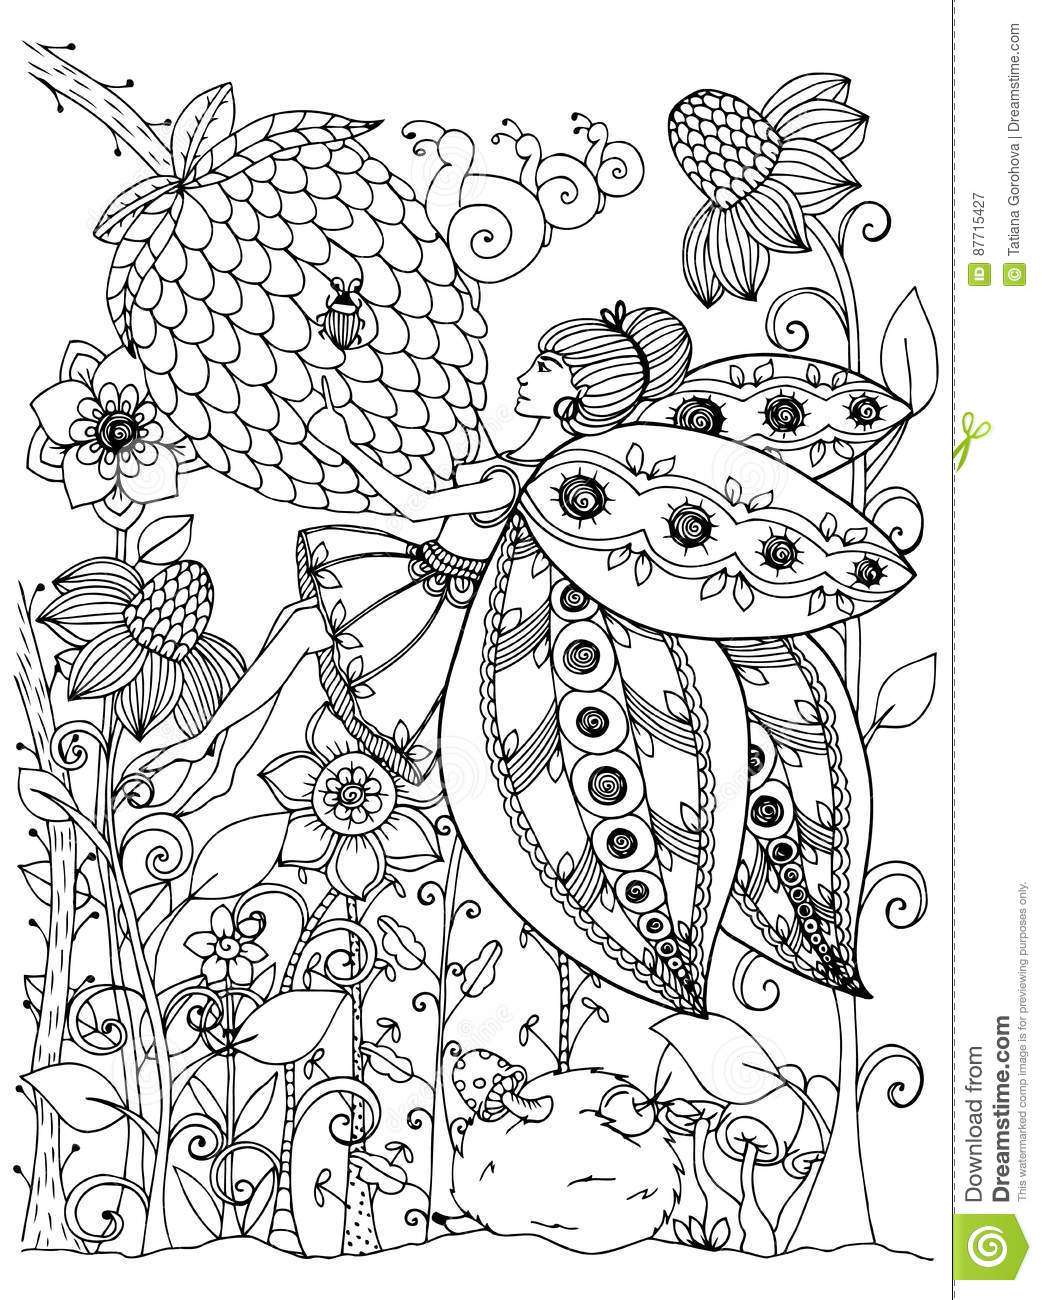 Butterfly and flower coloring pages for adults